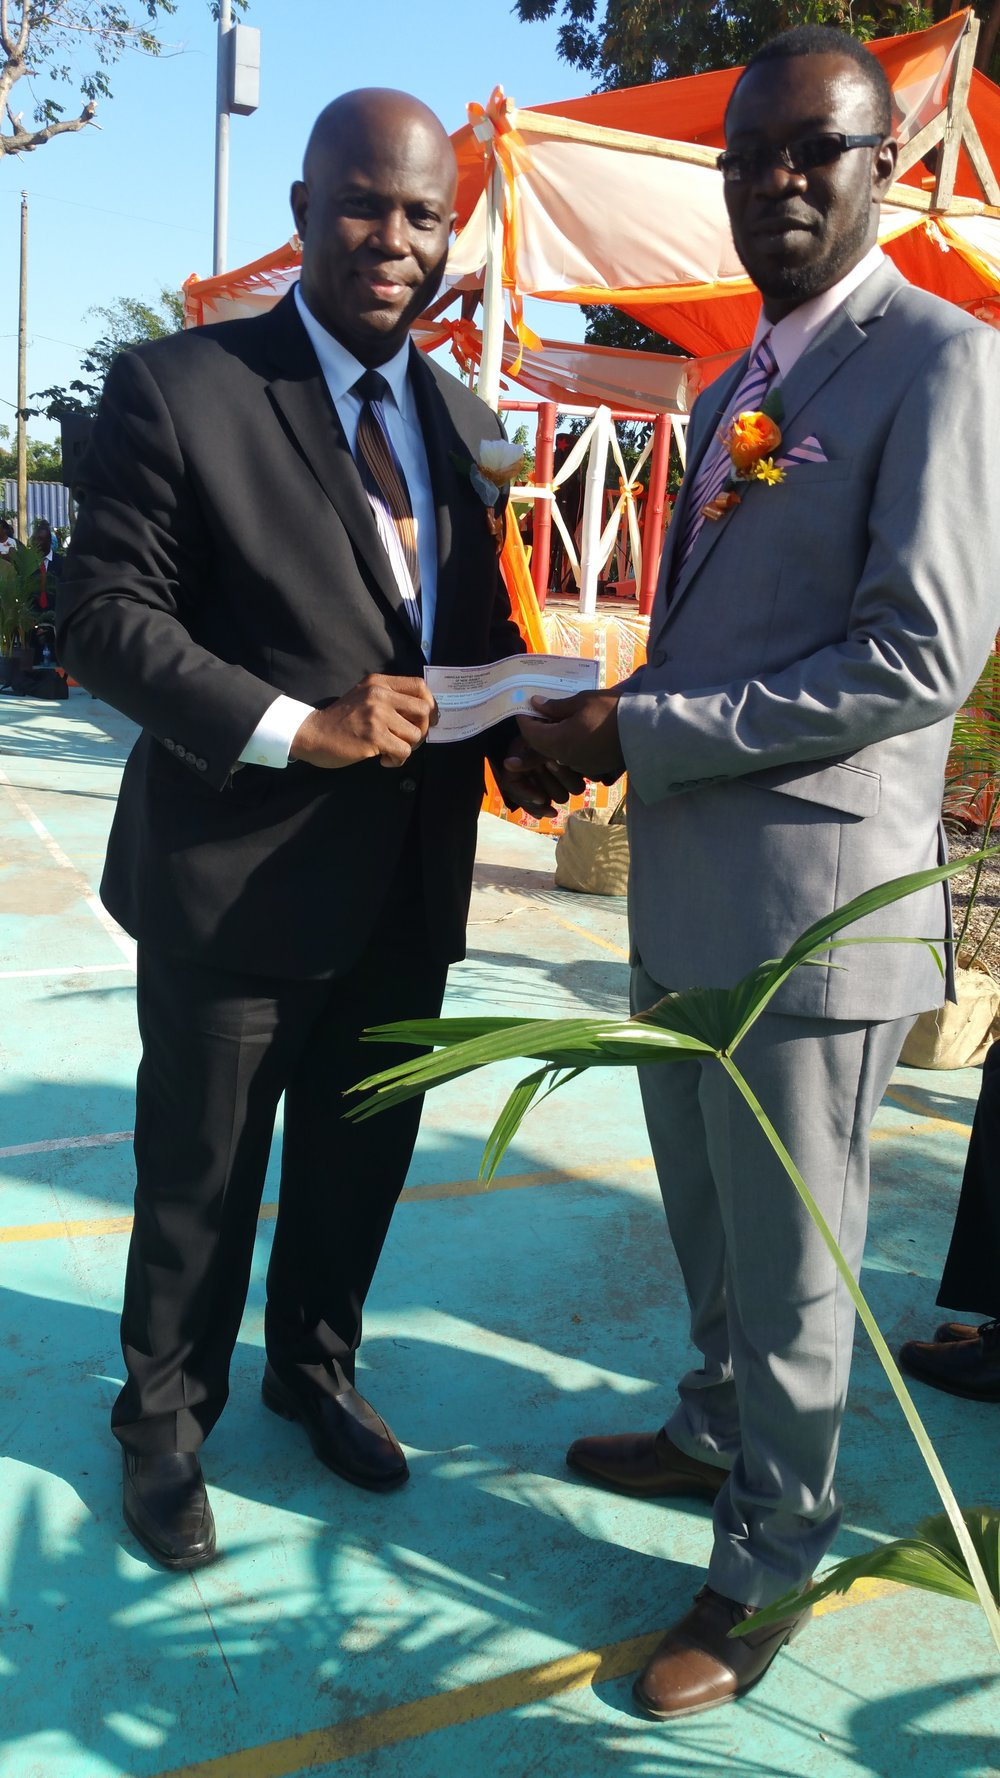 ABCNJ provides a $1,000 donation to Haitian Baptist Hospital.